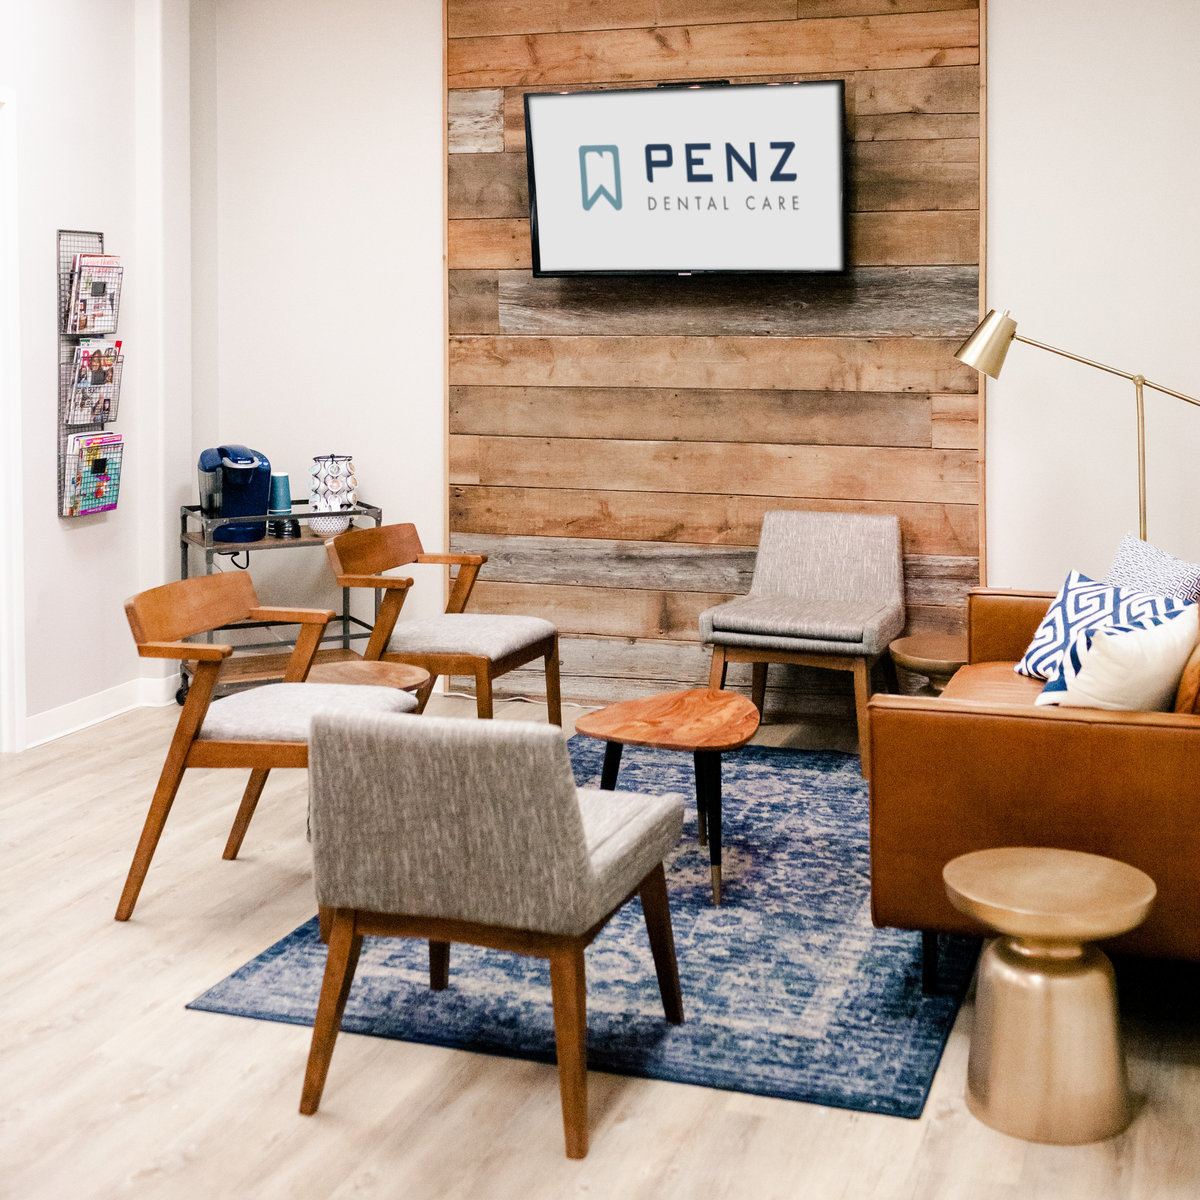 penz dental care office waiting room interior photography taryn christine